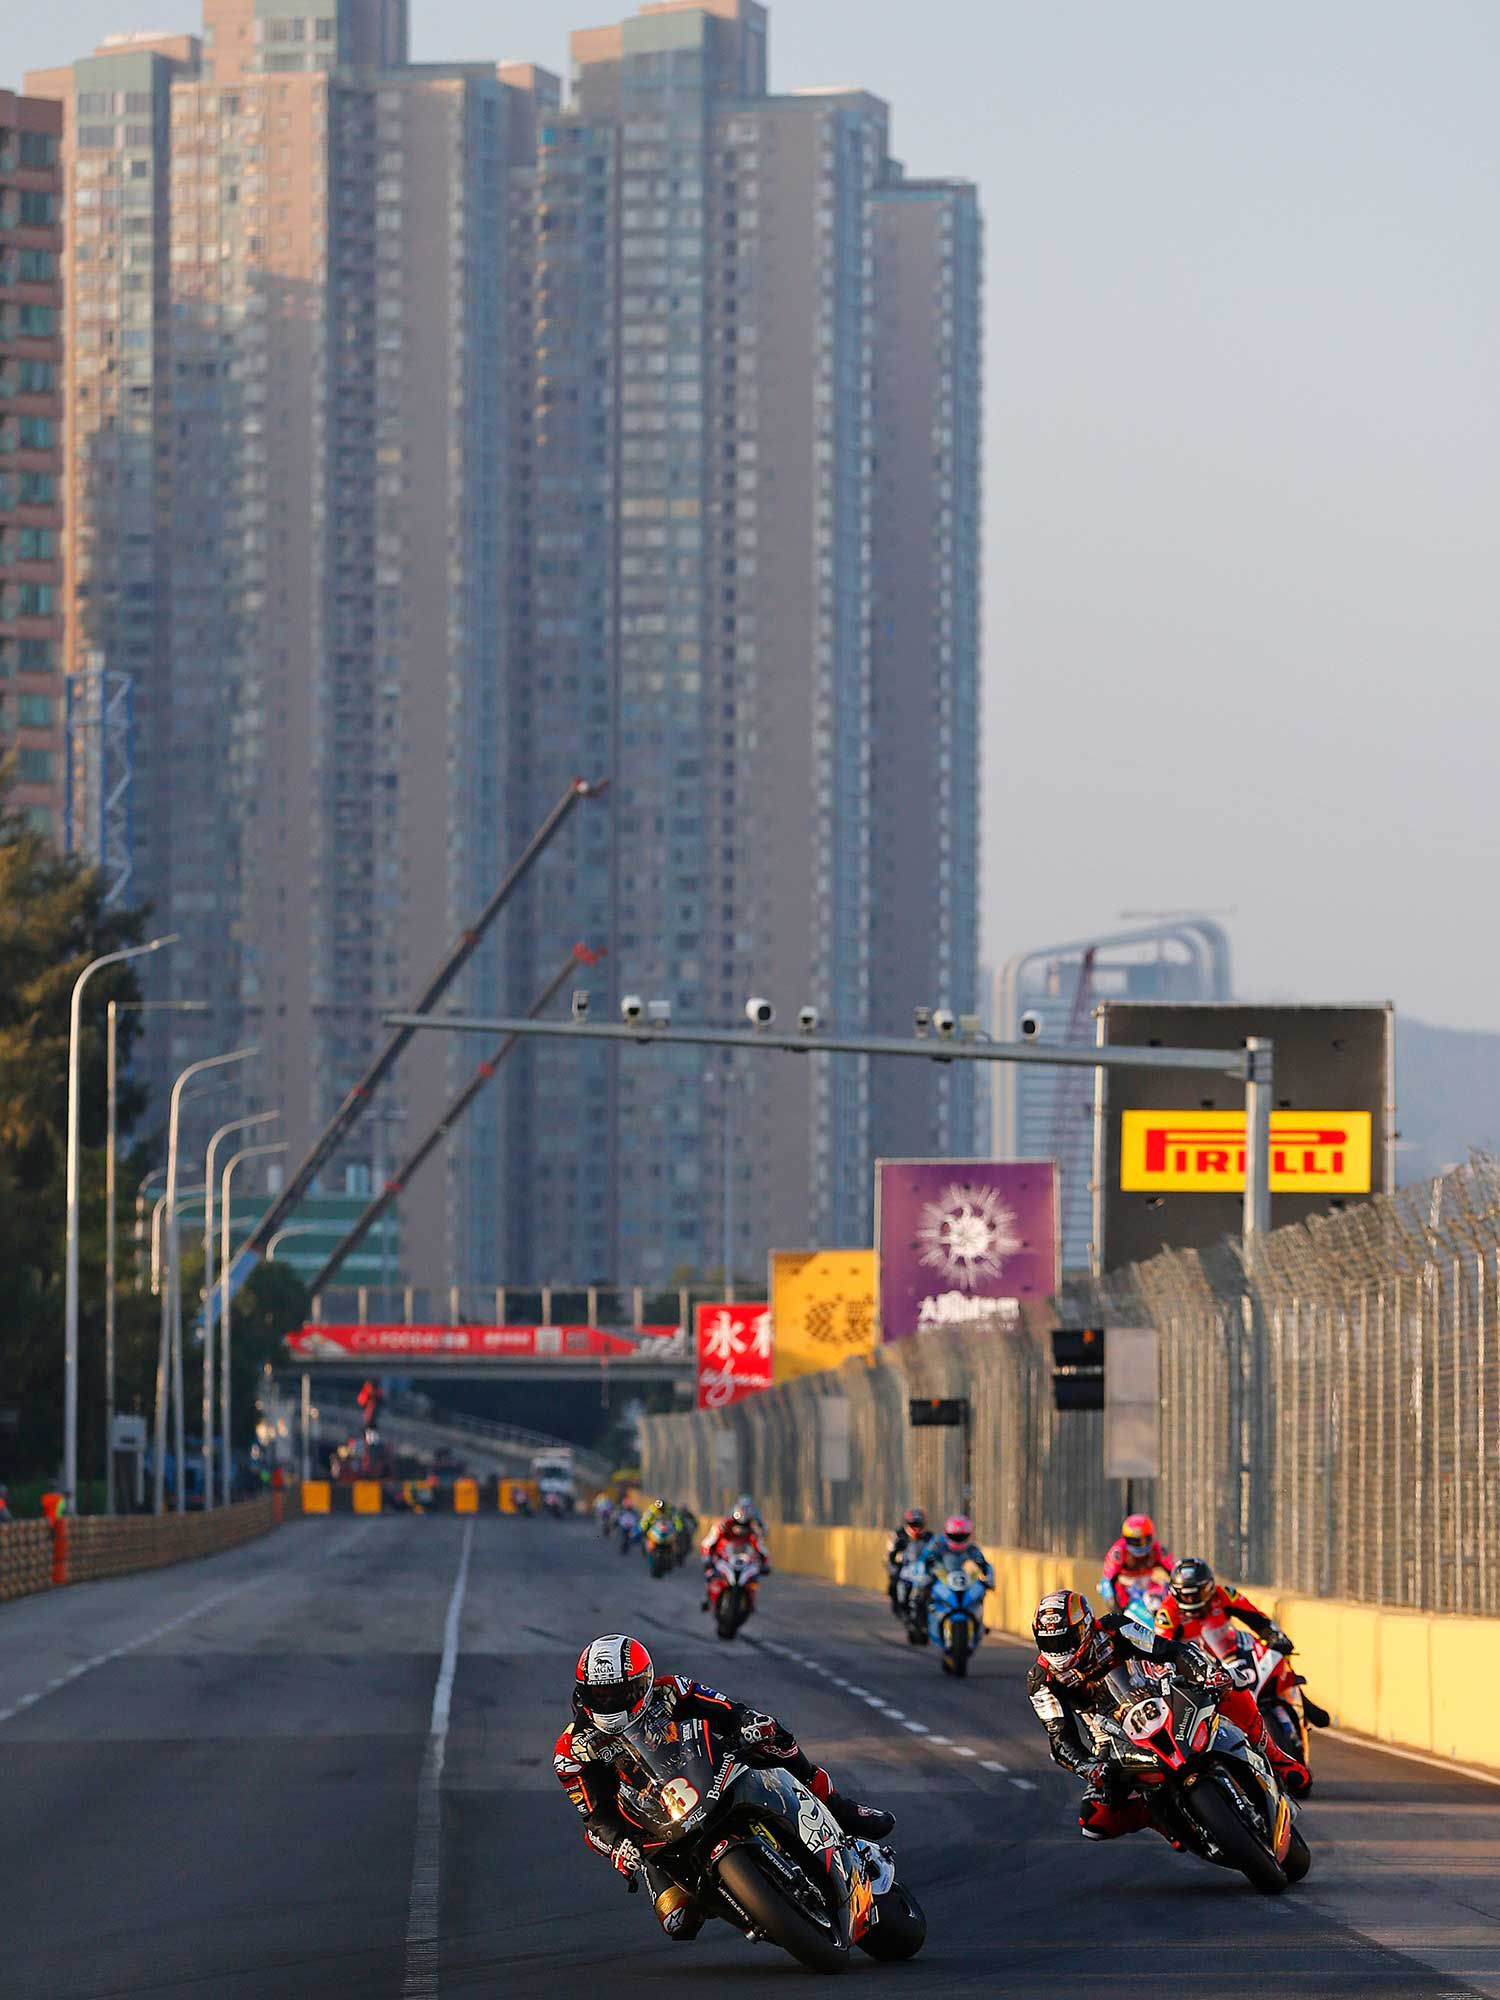 Multi-time Macau GP champ, Michael Rutter leads the race on the iconic RC213V-S Honda.